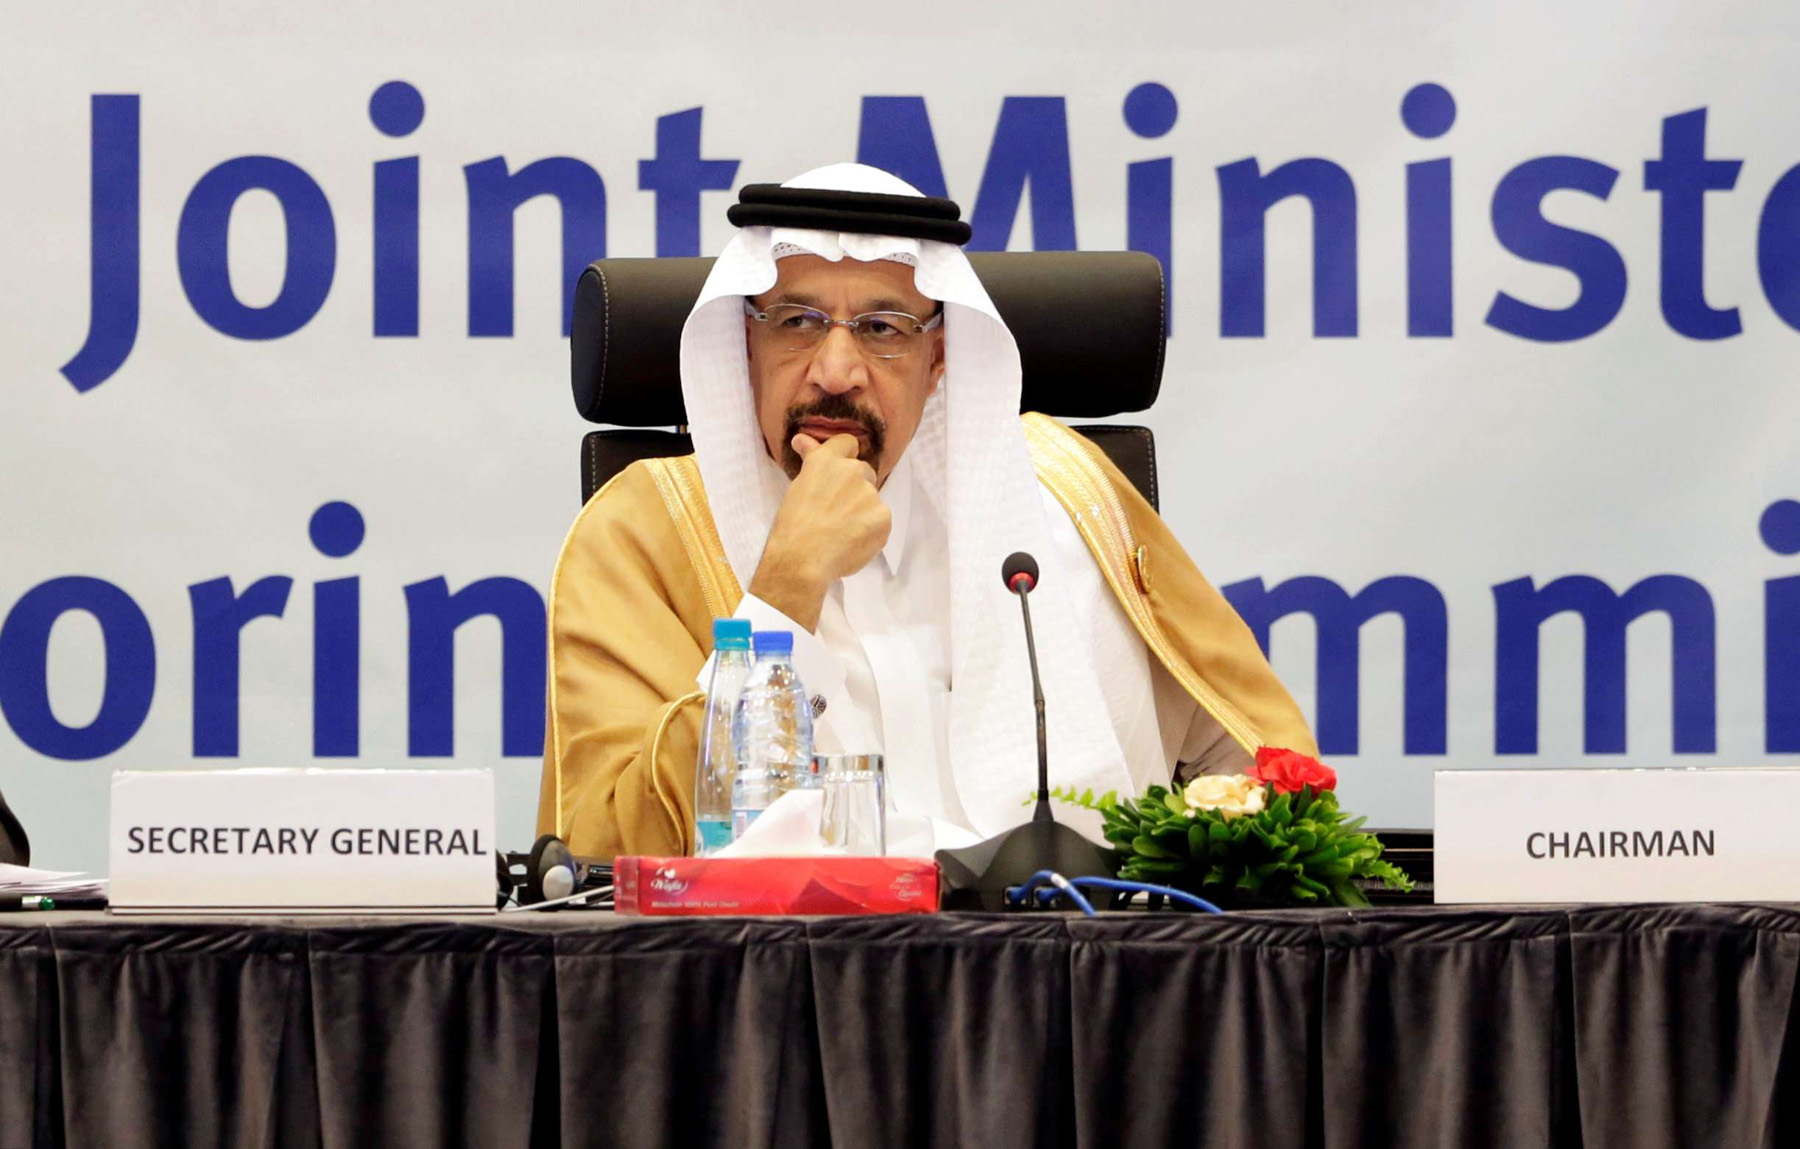 Saudi Arabian Energy Minister Khalid al-Falih during the inaugural session ceremony of the OPEC Ministerial Monitoring Committee in Algiers, Algeria September 23, 2018. (Reuters)